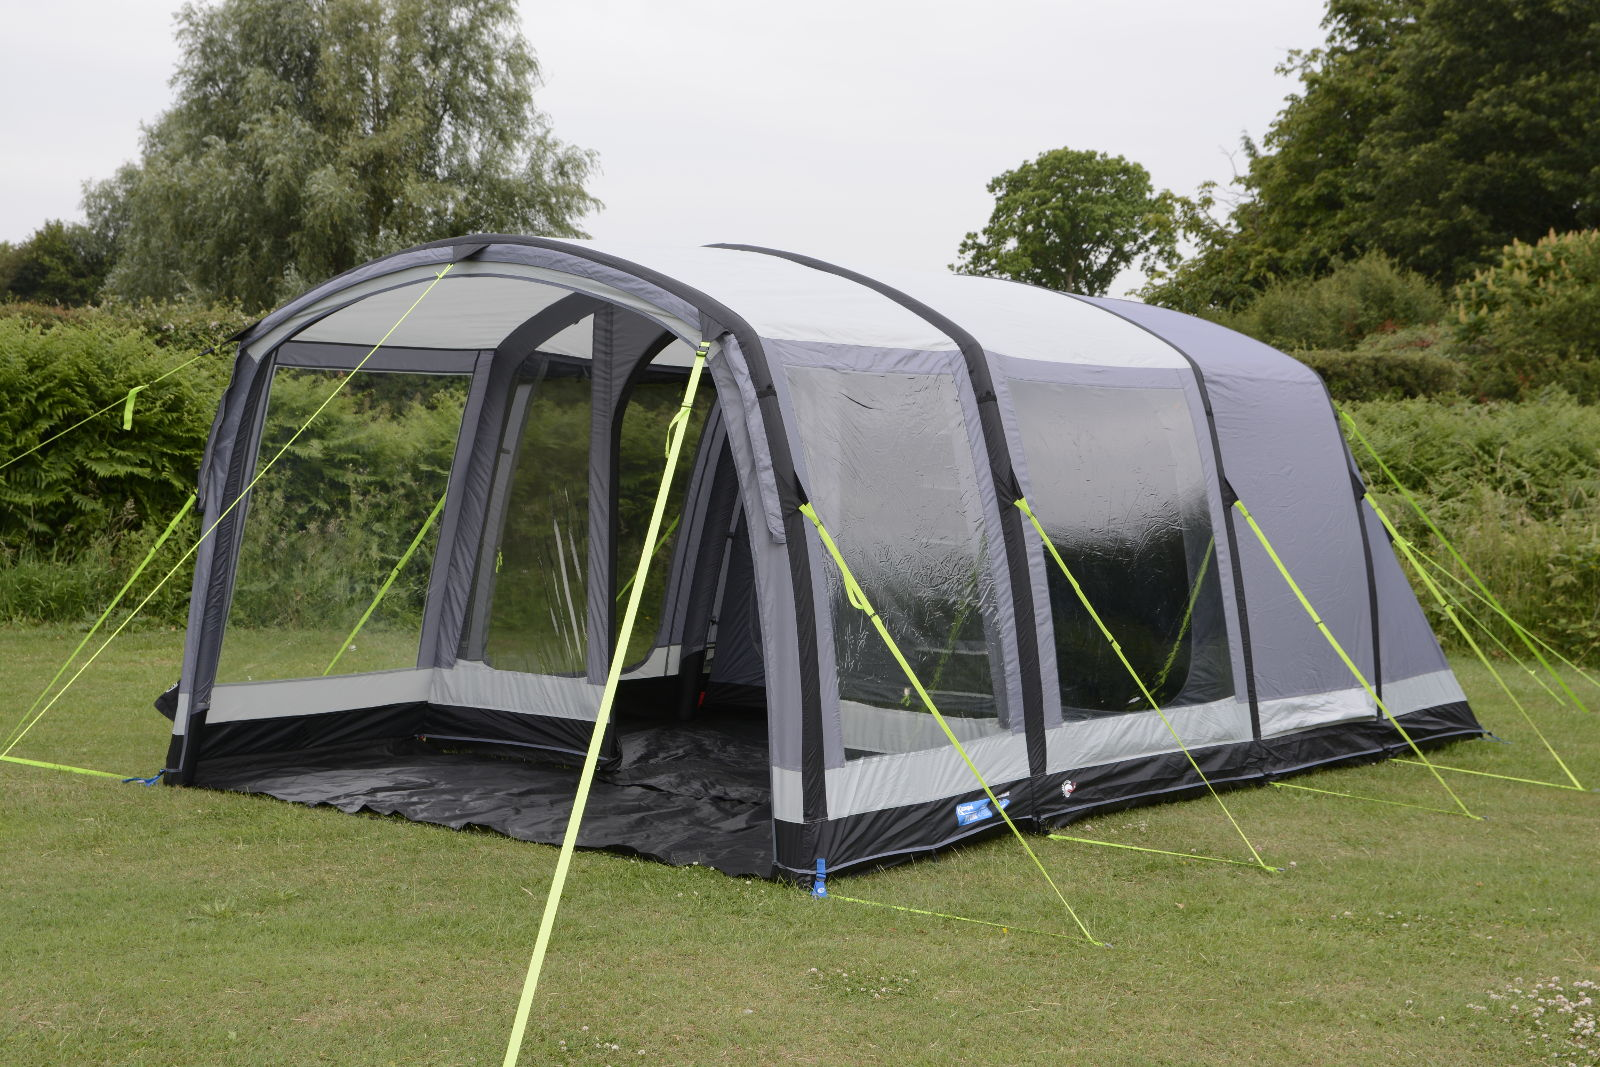 new products a2c76 aafc0 The Best Trailer Tents And Folding Campers for 2019 - Advice ...